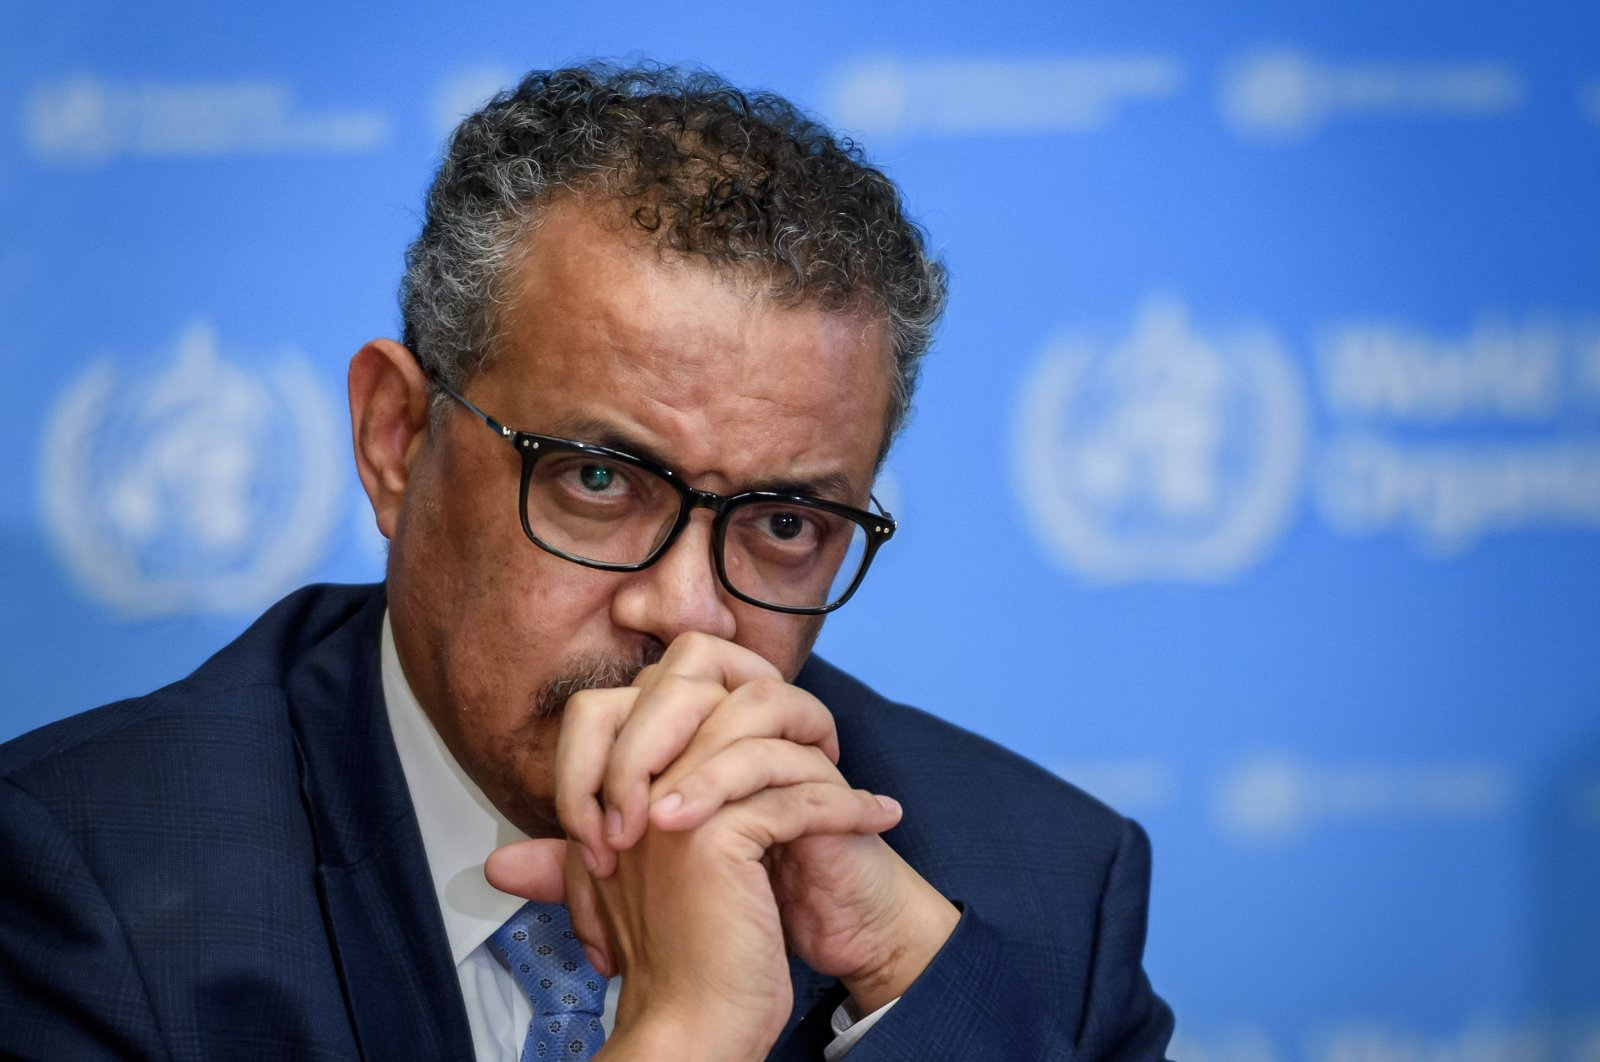 World Health Organization (WHO) Director-General Tedros Adhanom Ghebreyesus attends a daily press briefing on the new coronavirus dubbed COVID-19, at the WHO headquaters on March 2, 2020 in Geneva. (AFP Photo)